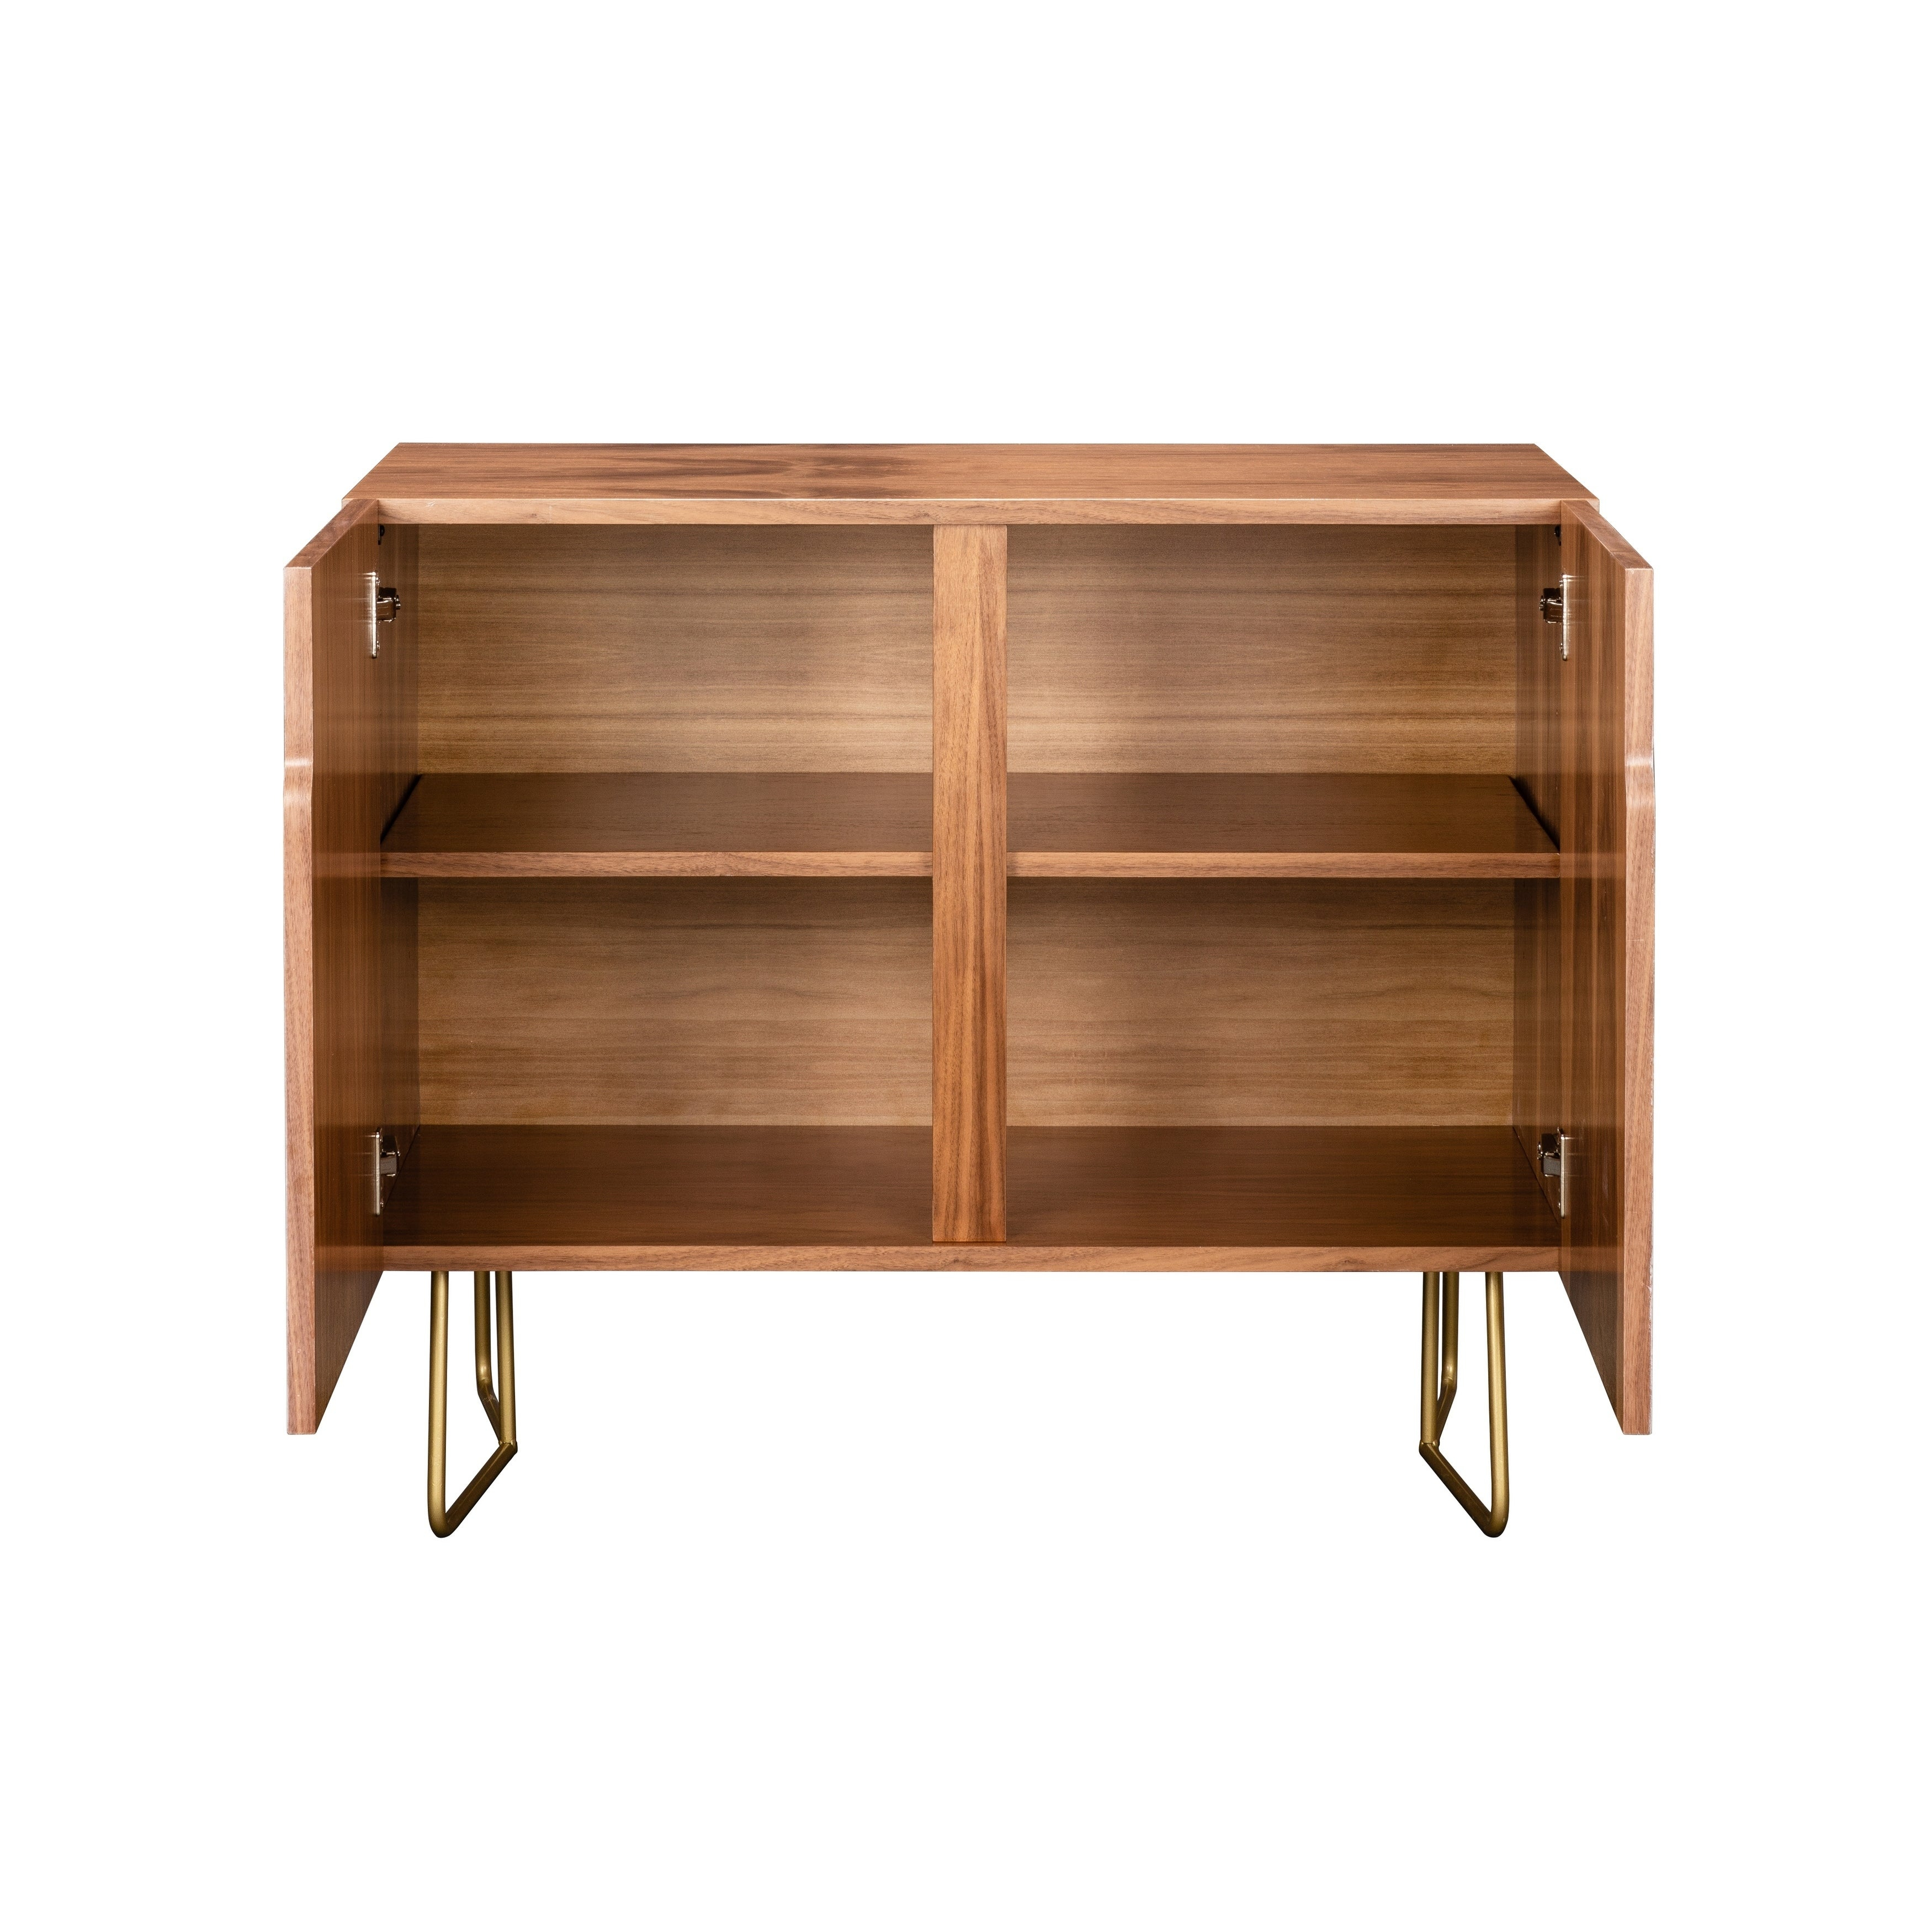 Deny Designs Festival Eclipse Credenza (Birch Or Walnut, 2 Leg Options) Intended For Festival Eclipse Credenzas (Photo 5 of 30)